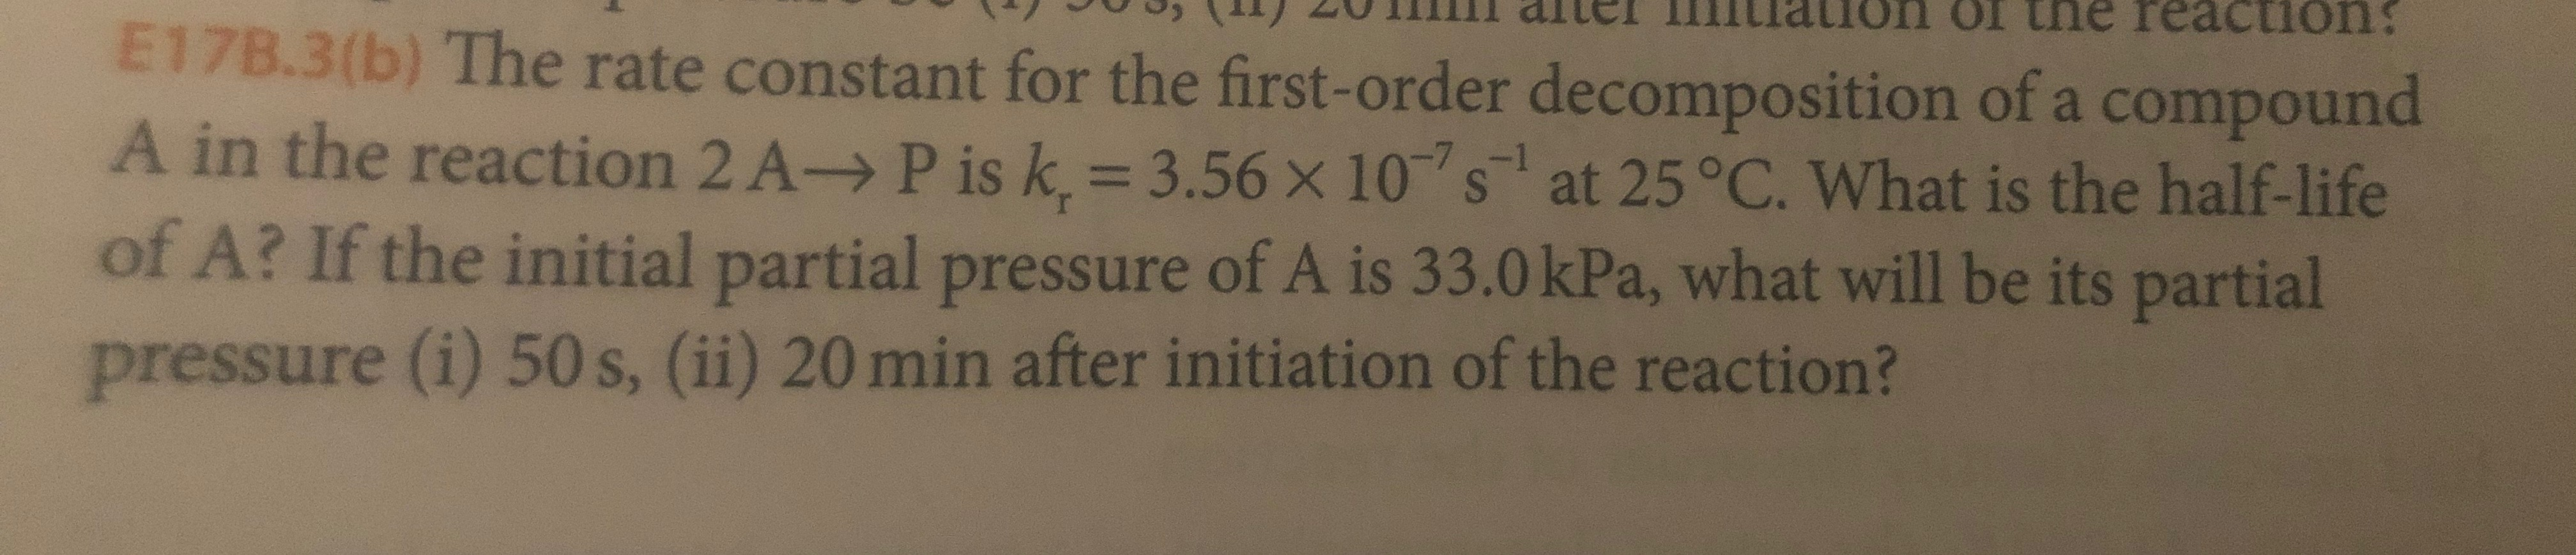 aion ol tne reaction E17B.3(b) The rate constant for the first-order decomposition of a compound A in the reaction 2 A-> P is k. 3.56 x 10s at 25 °C. What is the half-life of A? If the initial partial pressure of A is 33.0 kPa, what will be its partial pressure (i) 50 s, (ii) 20 min after initiation of the reaction?